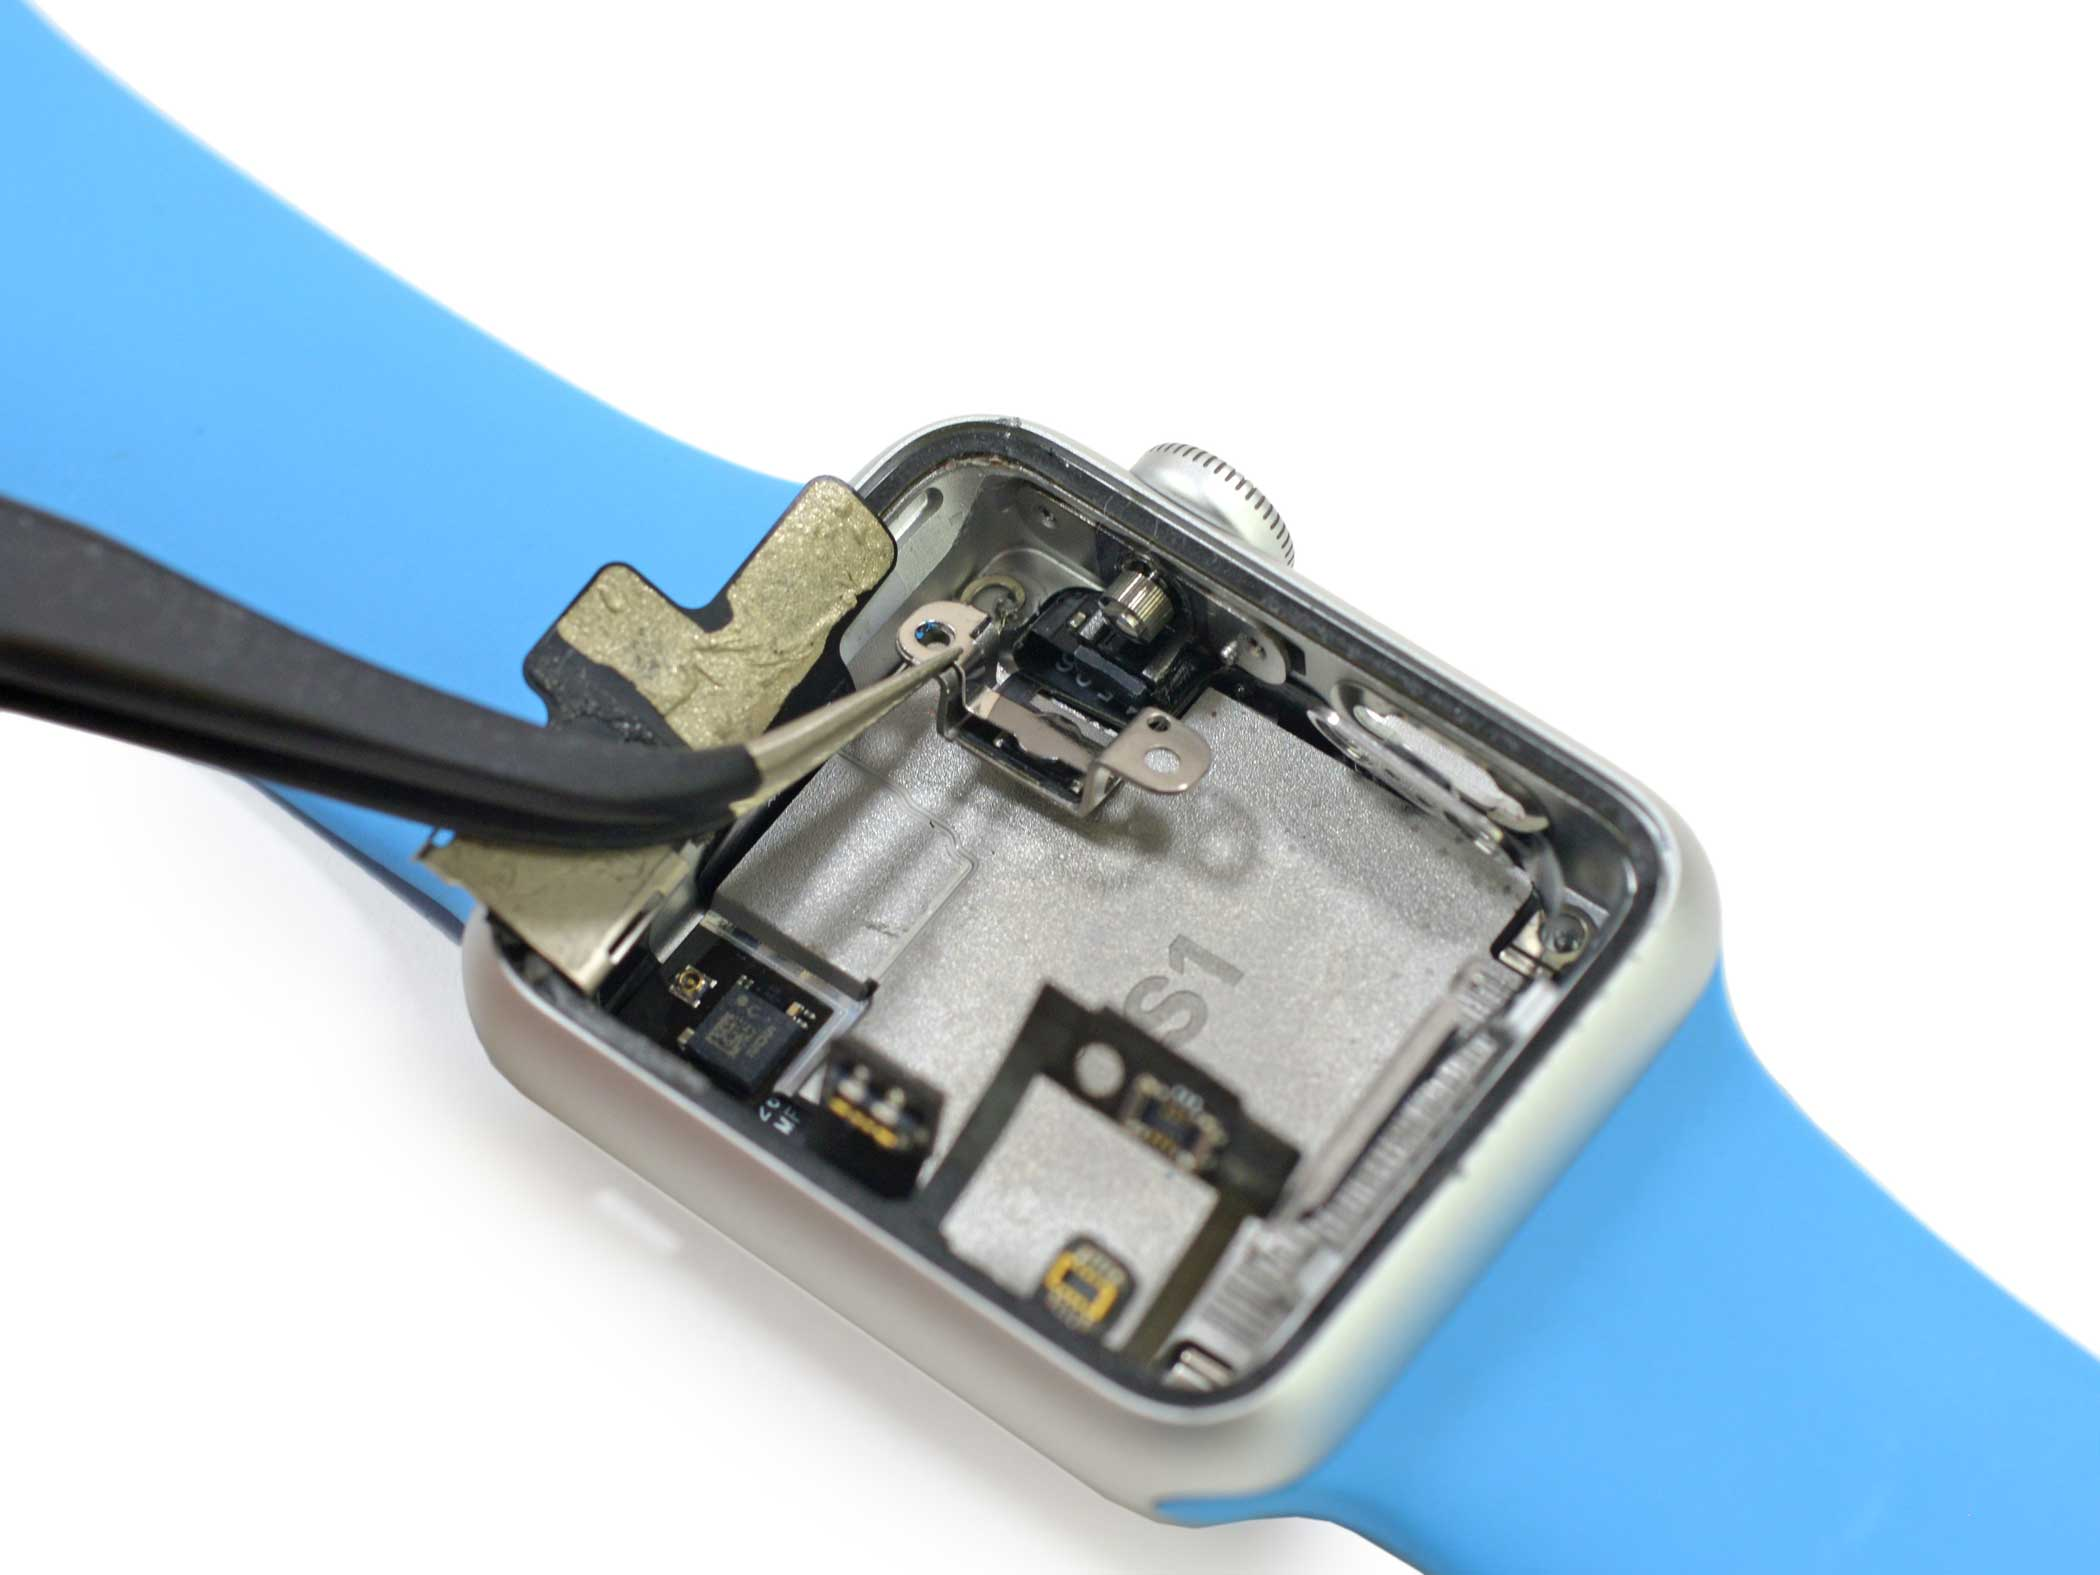 Removing the digital crown bracket is the final step before having access to the Apple Watch's integrated computer chip, the S1